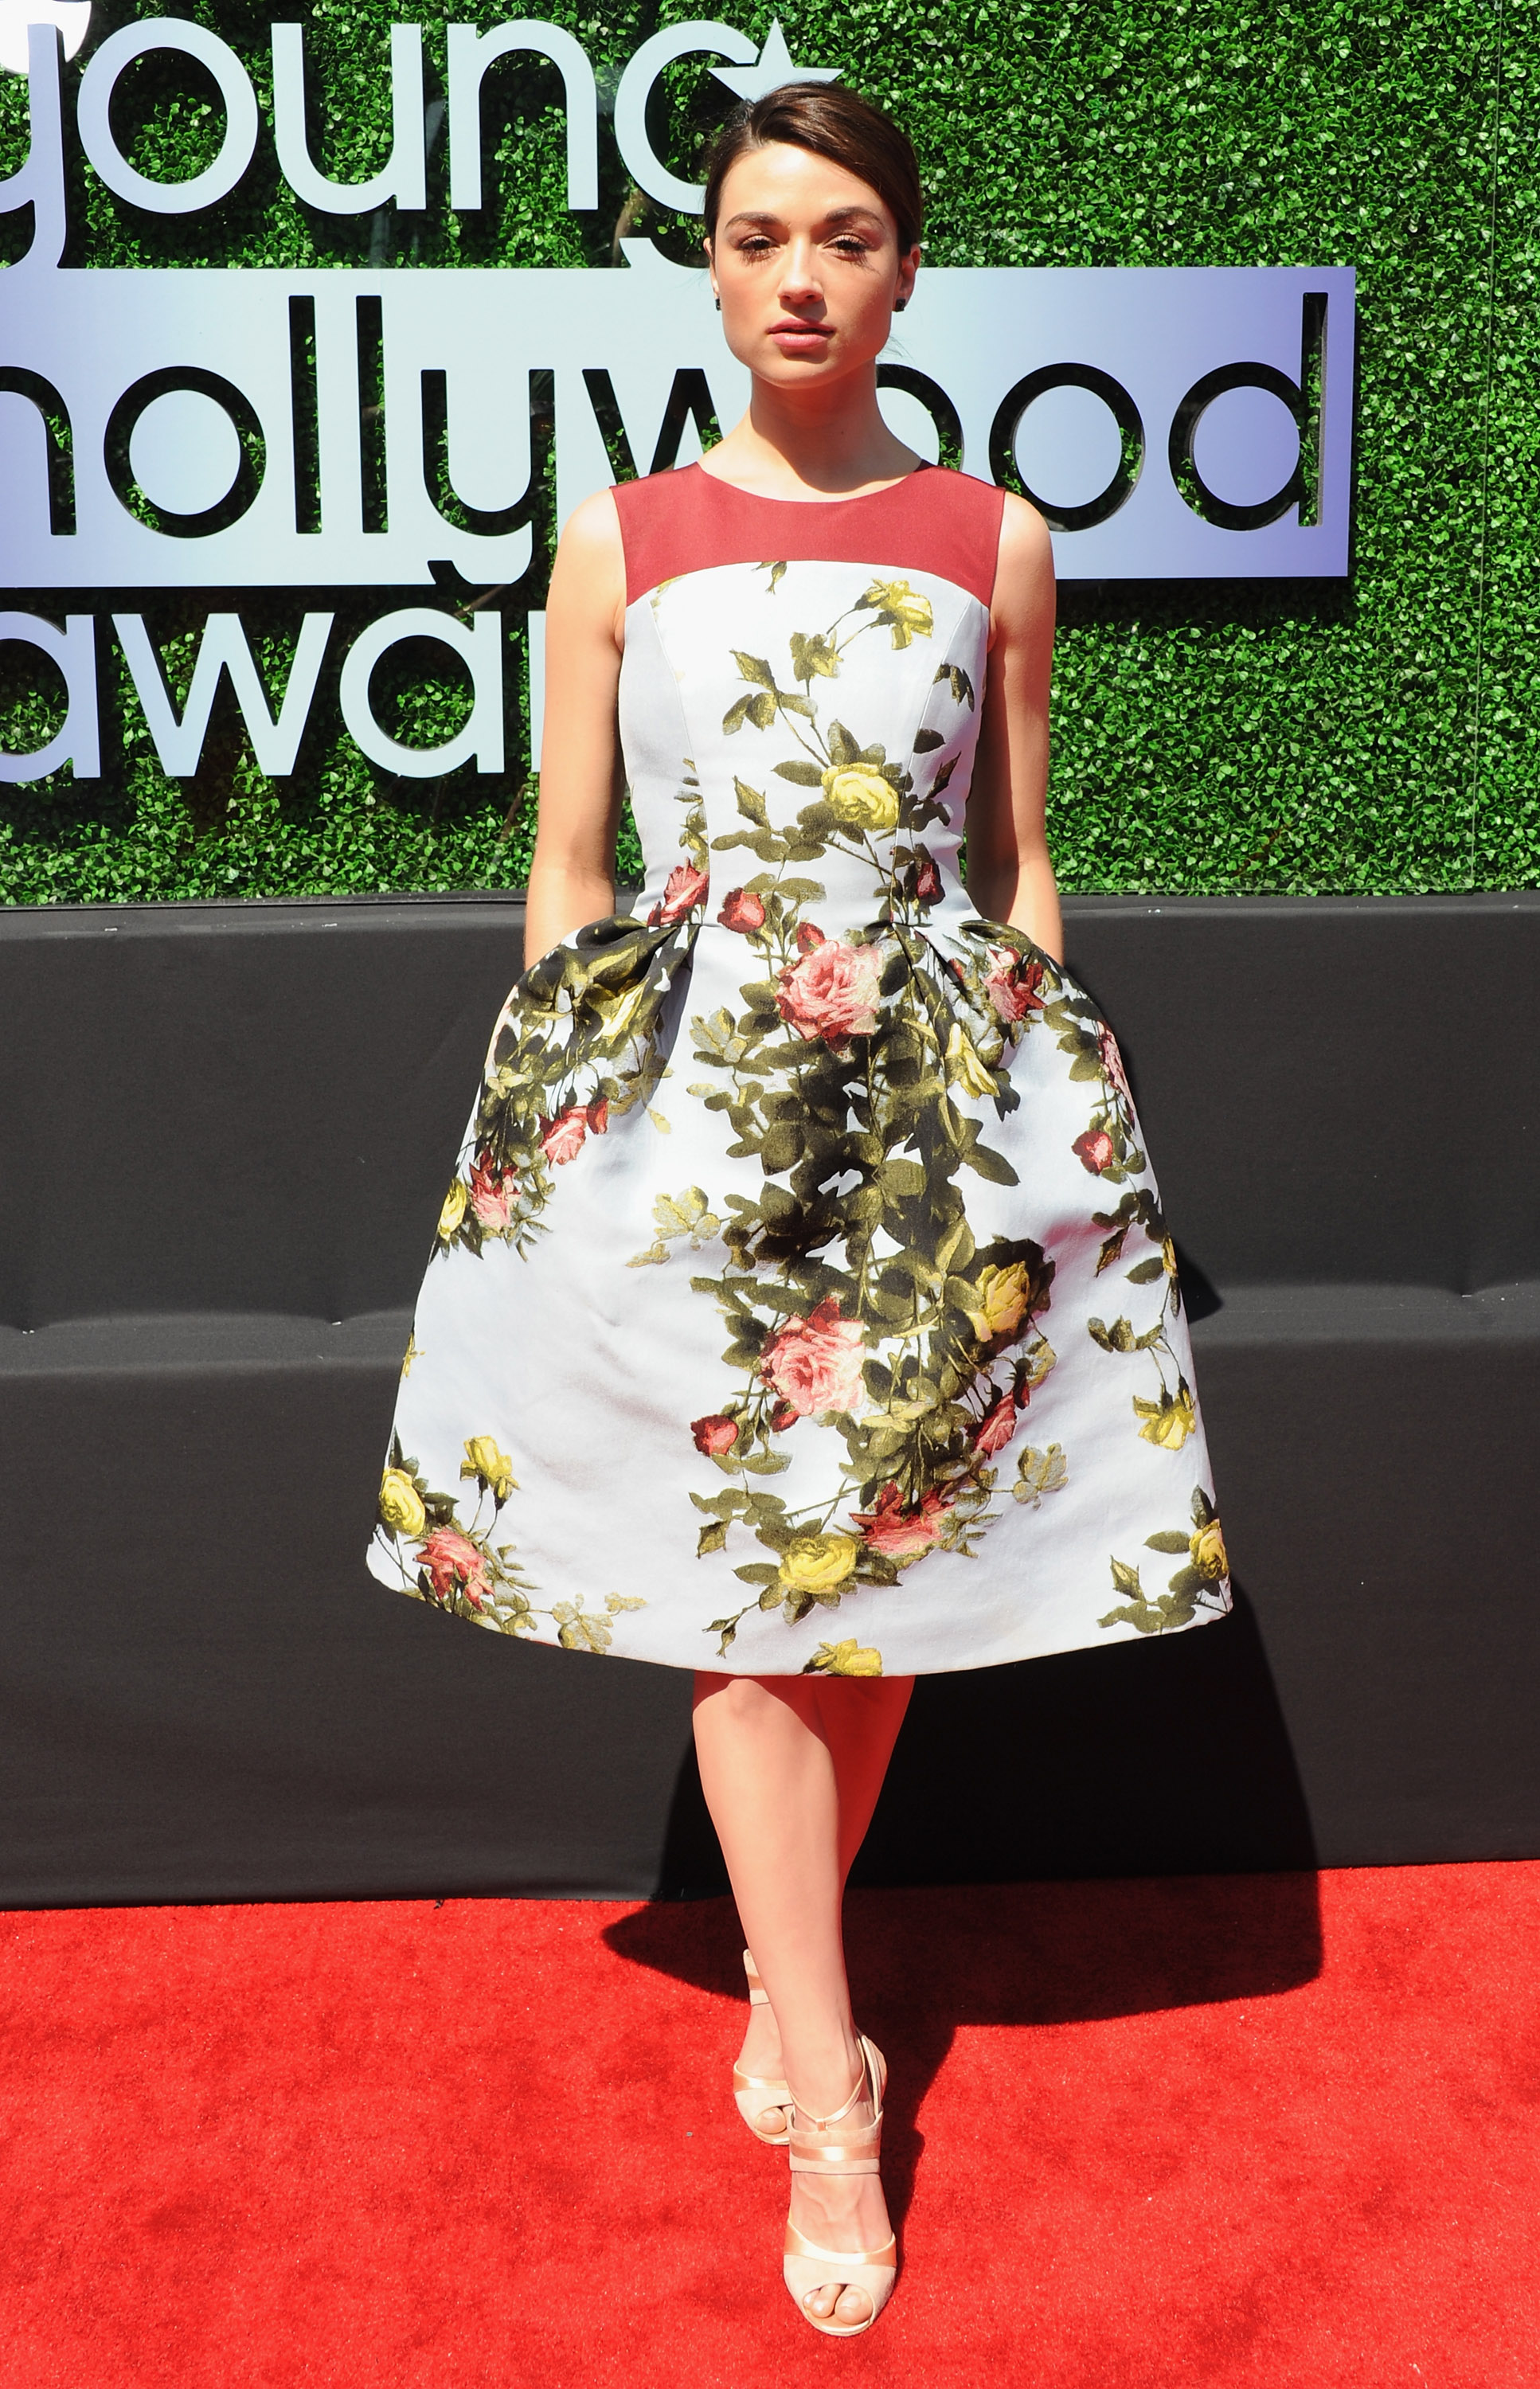 Crystal Reed floral dress